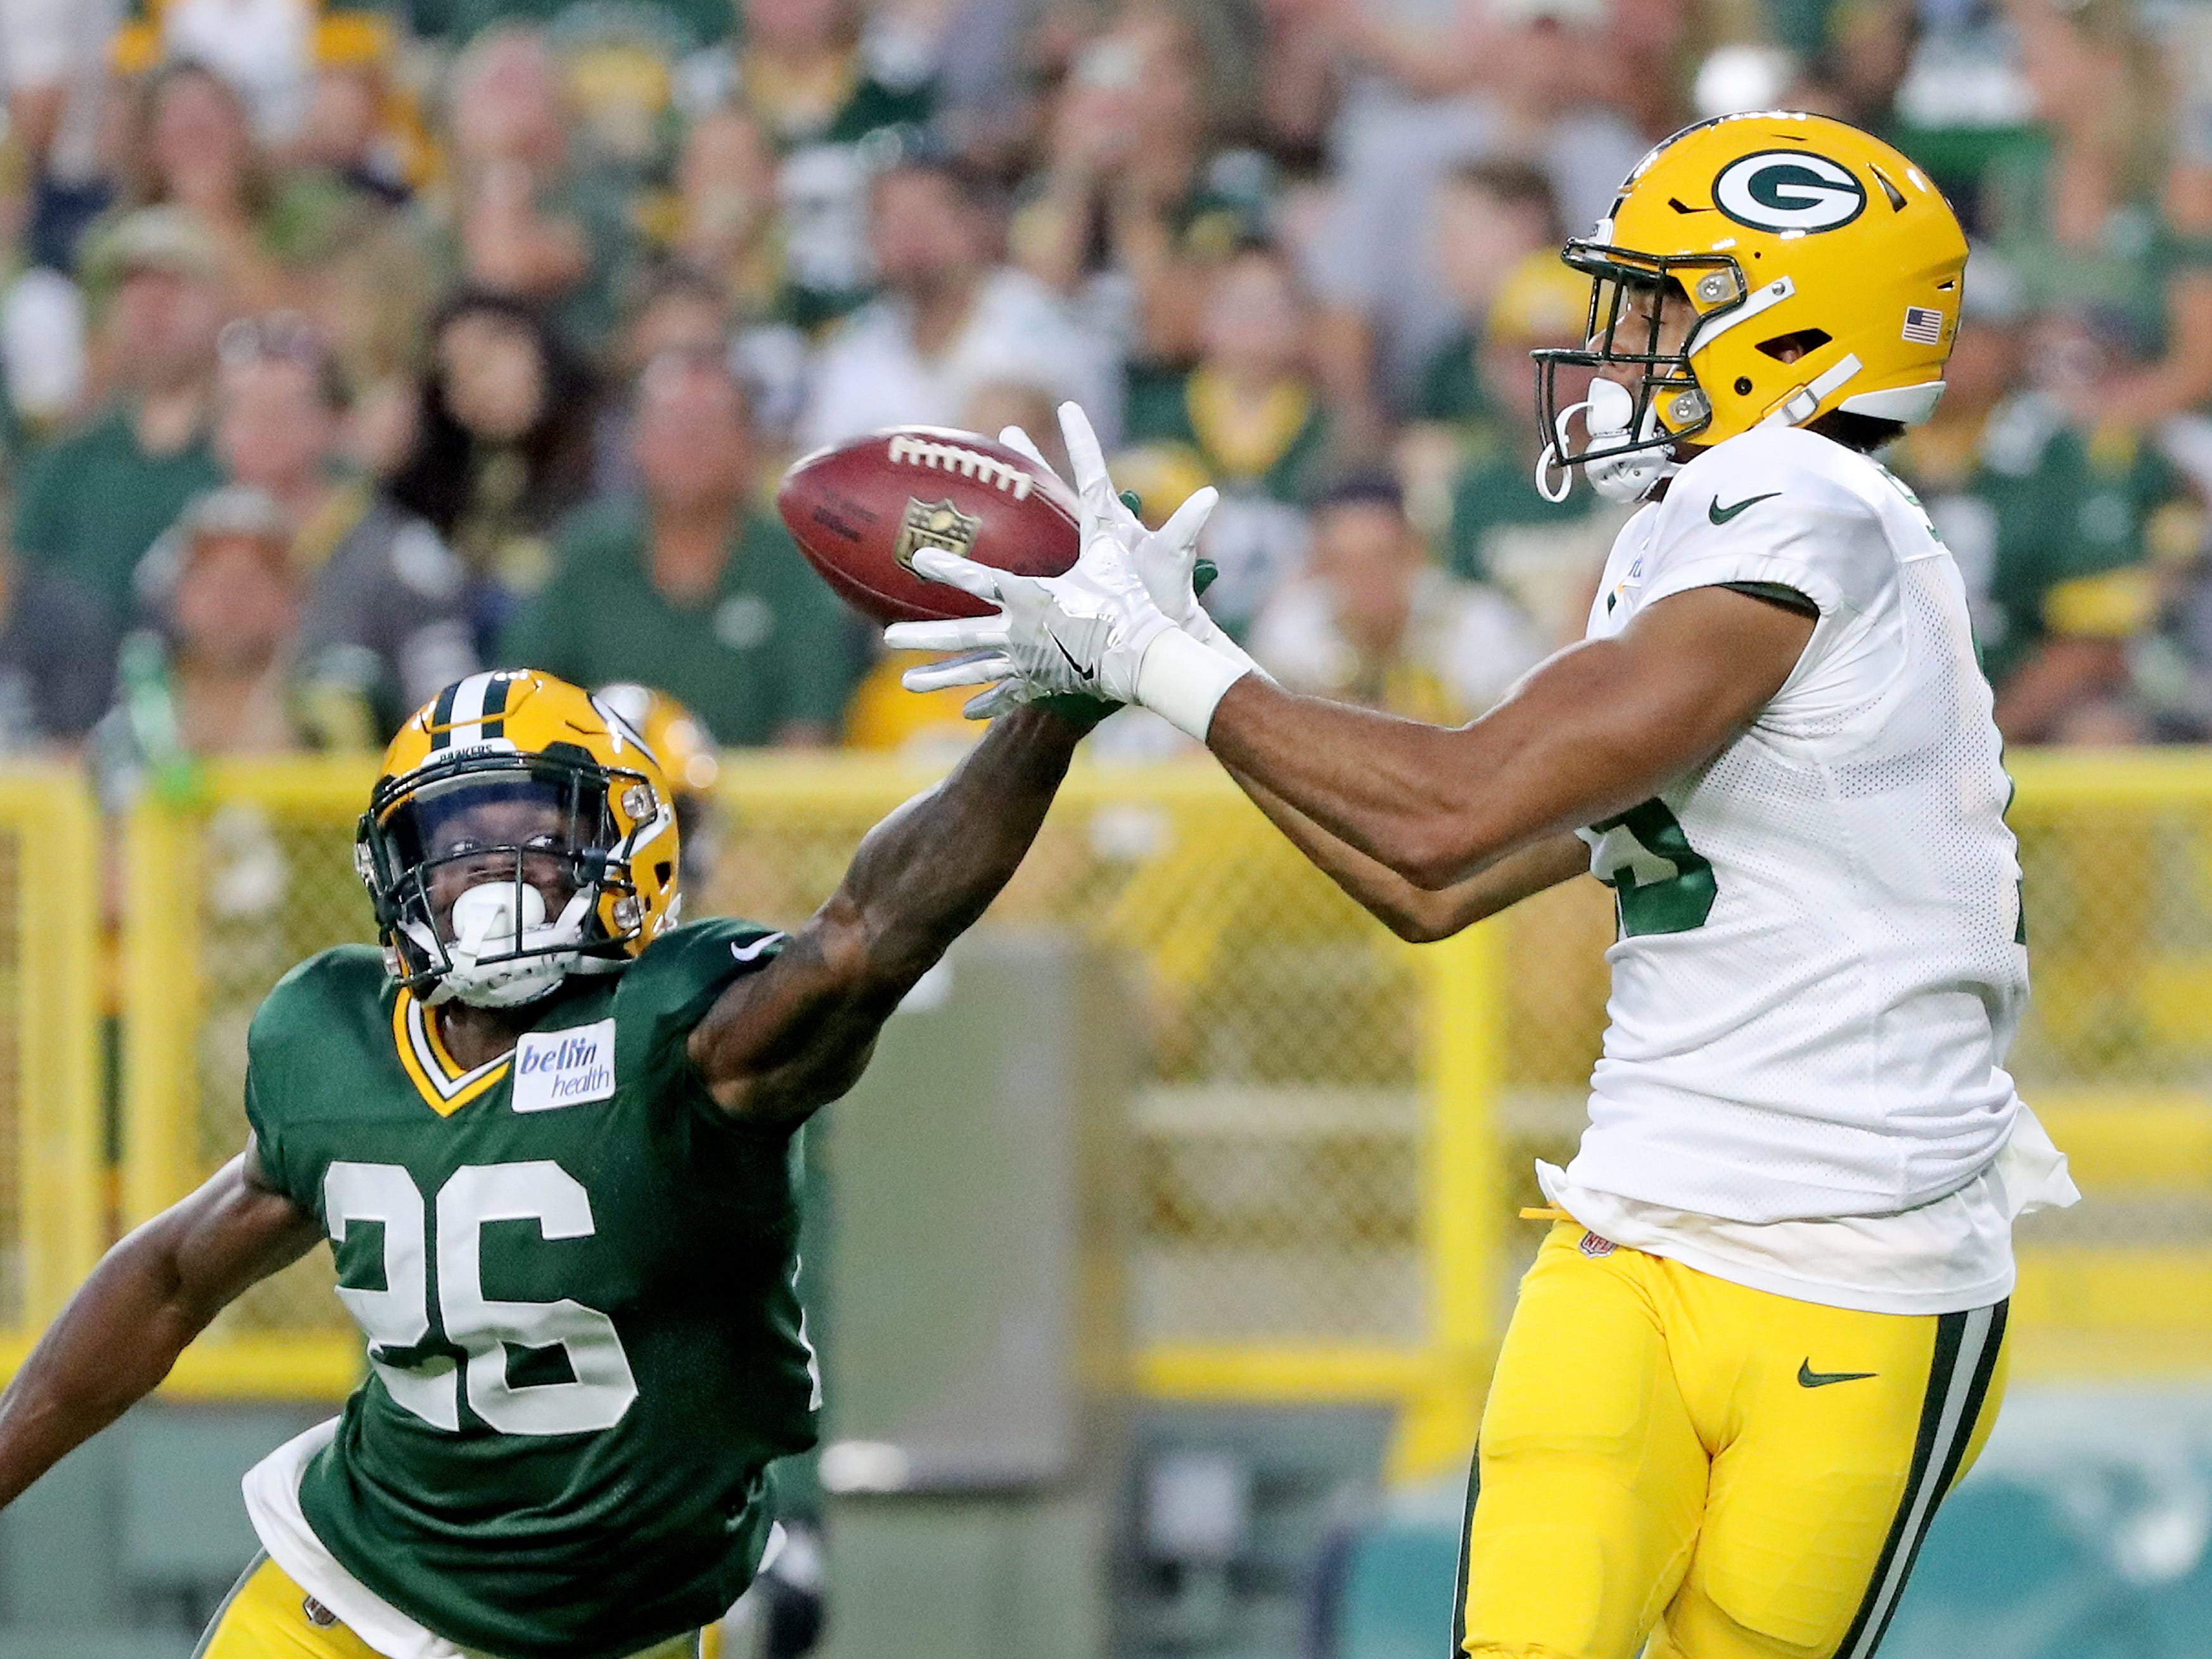 Green Bay Packers wide receiver Equanimeous St. Brown (19) catches a touchdown against cornerback Herb Waters (26) during Green Bay Packers Family Night  Saturday, August 4, 2018 at Lambeau Field in Green Bay, Wis.,